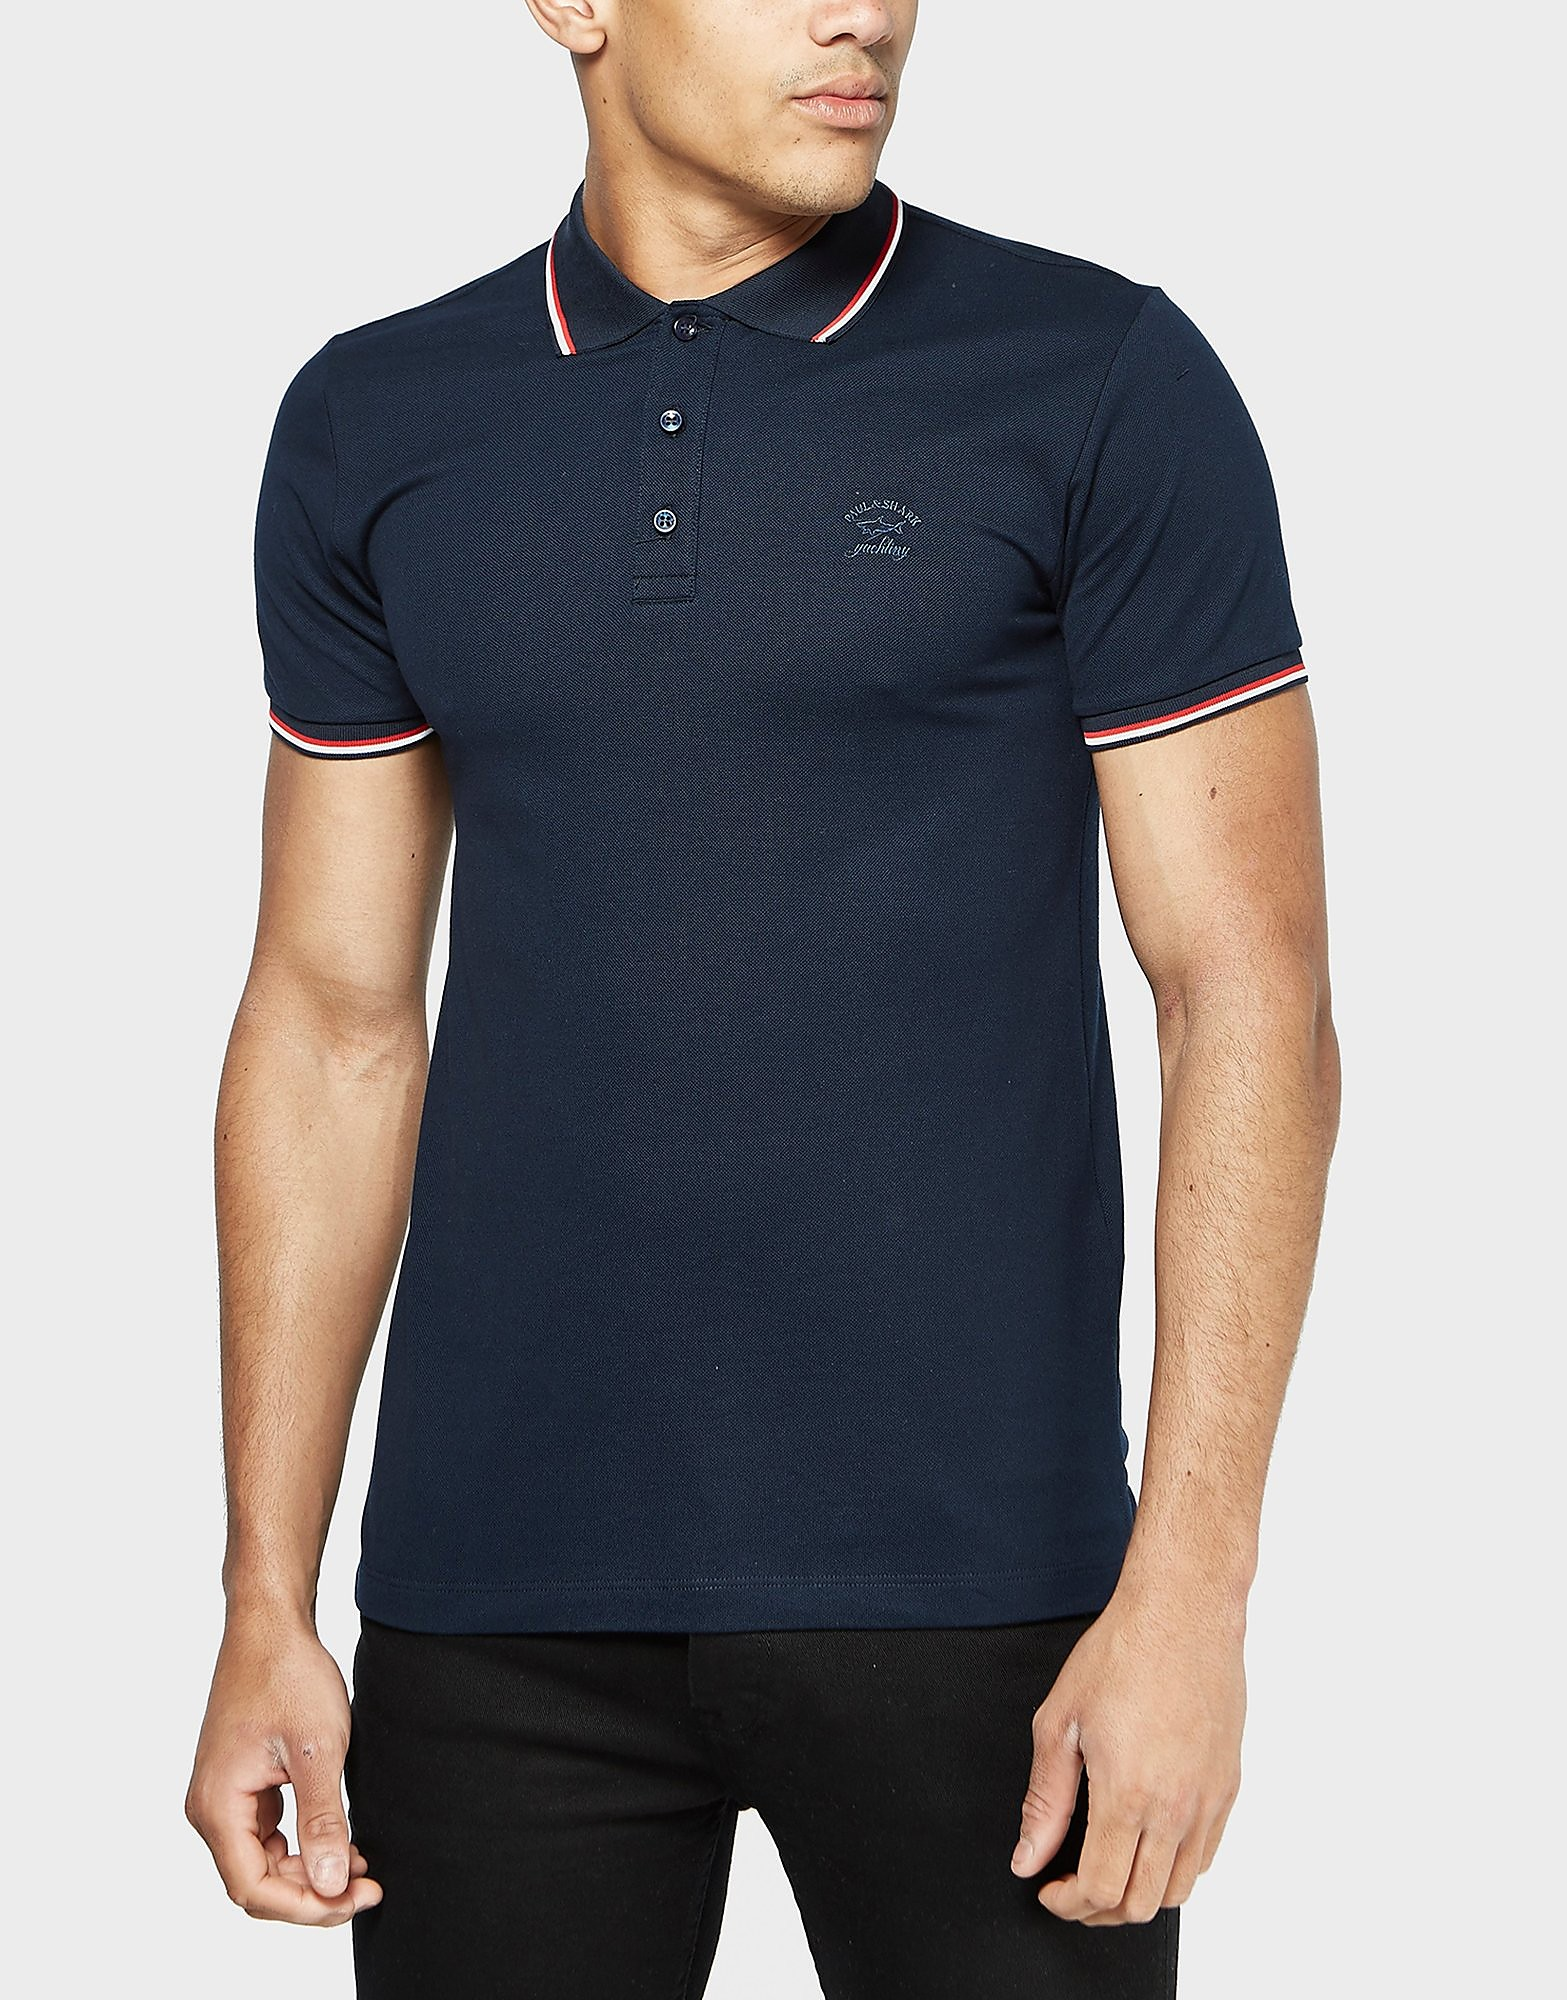 Paul and Shark Tipped Polo Shirt - Exclusive